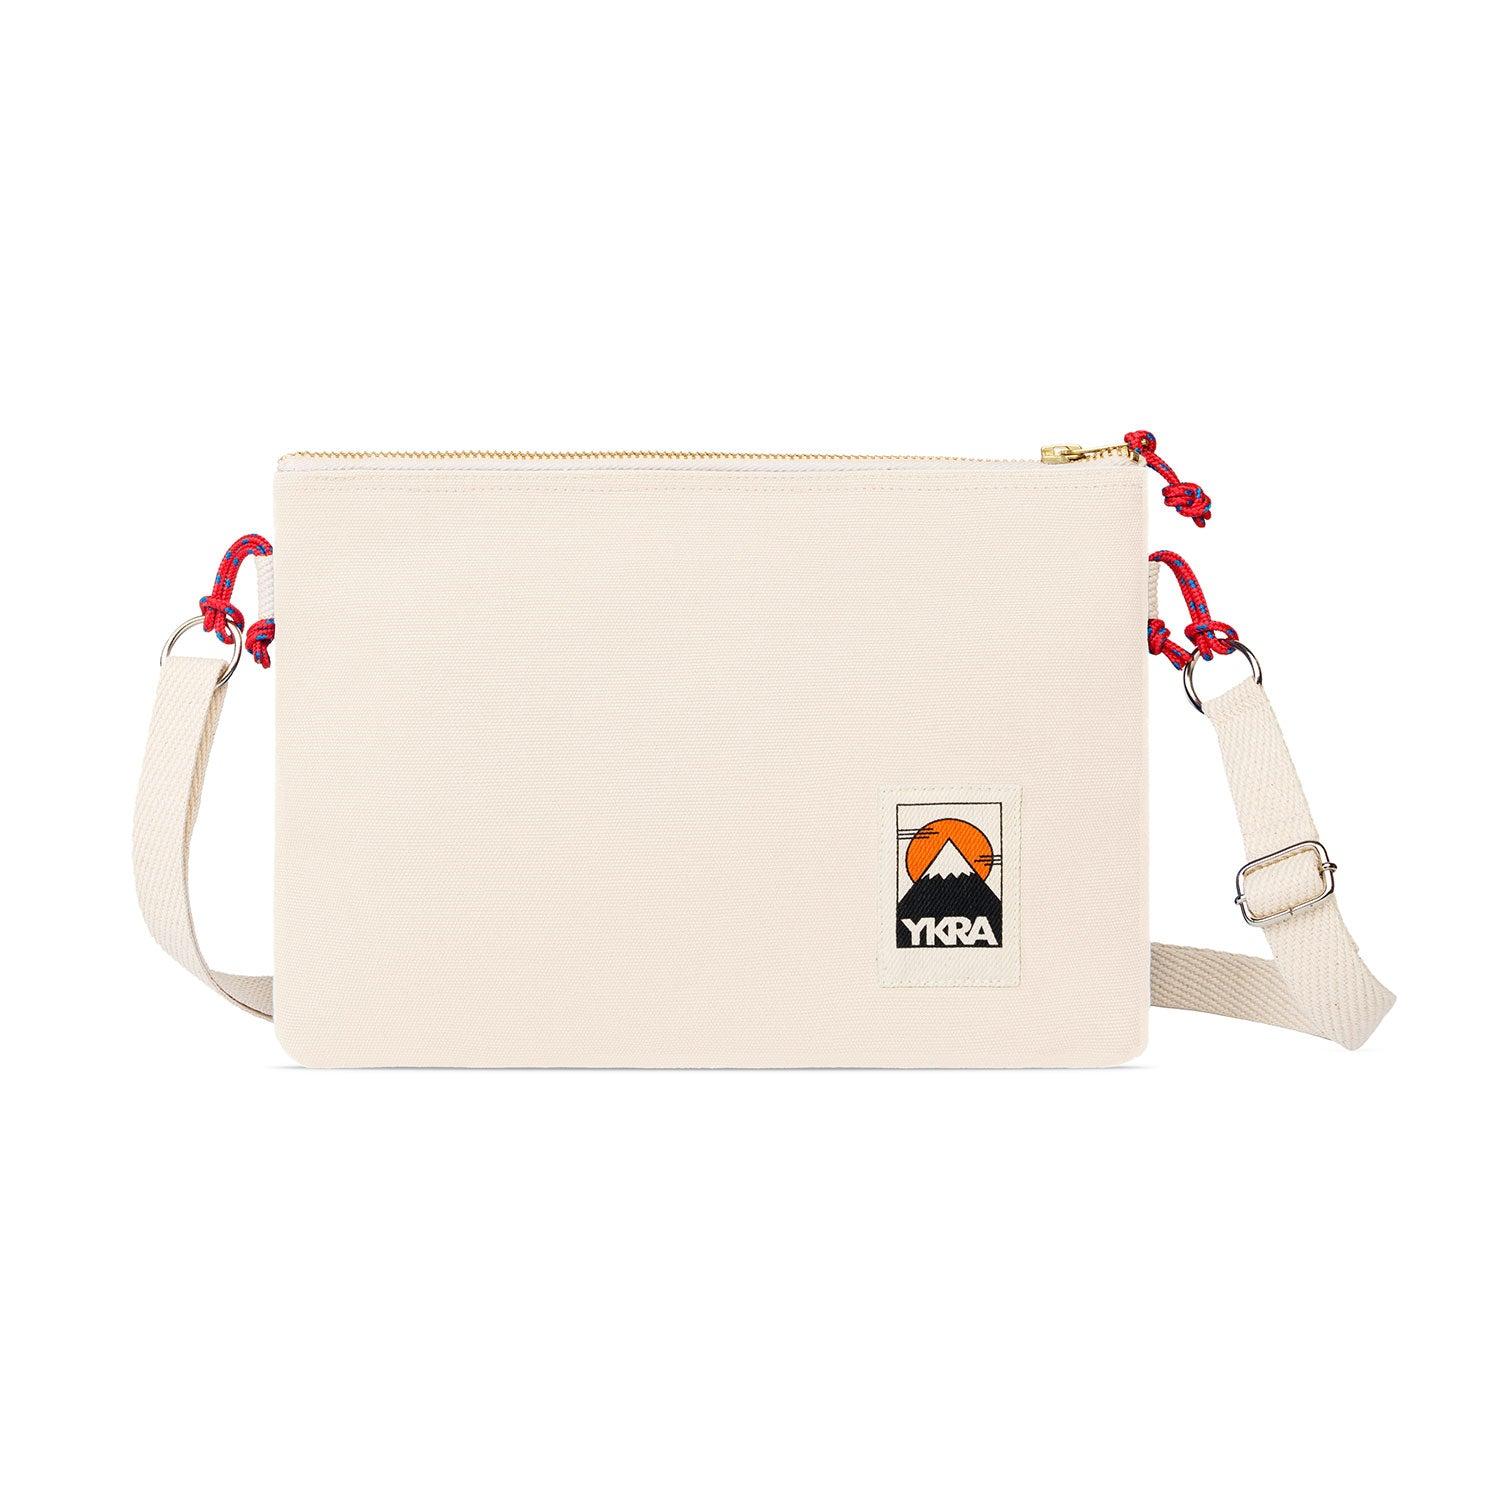 SIDE POUCH - WHITE - YKRA